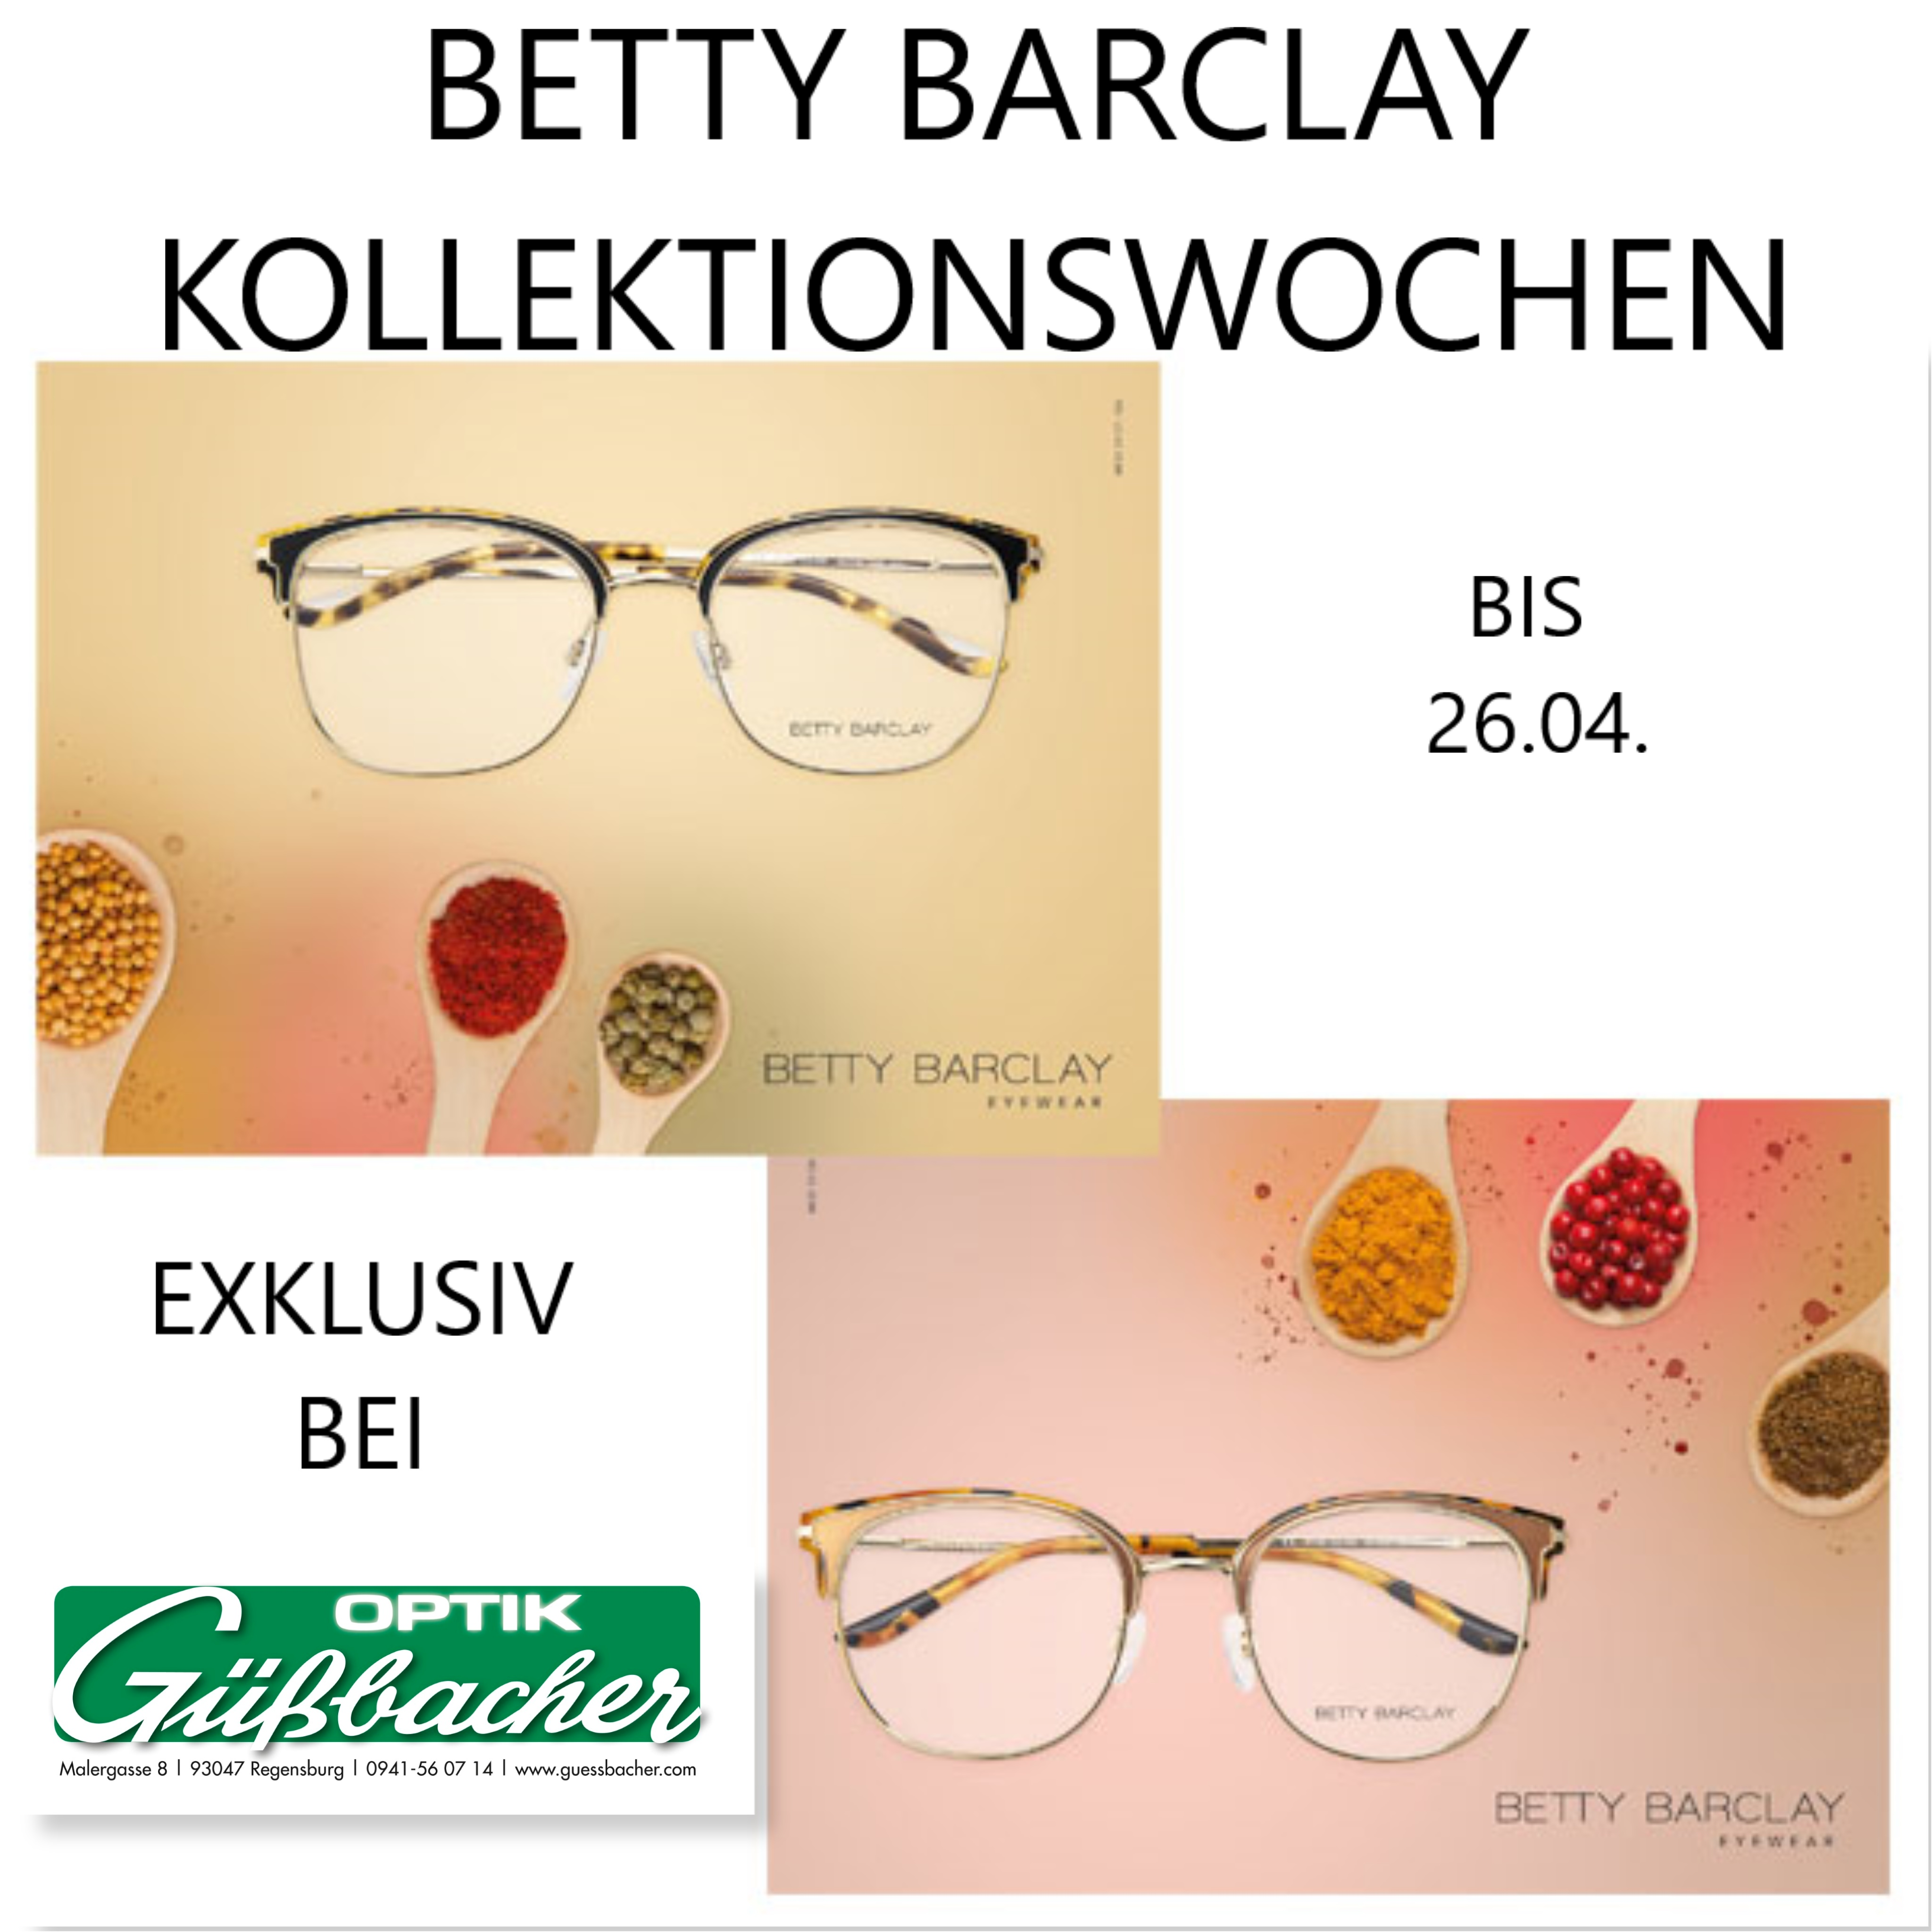 BETTY BARCLAY KOLLEKTIONSWOCHEN